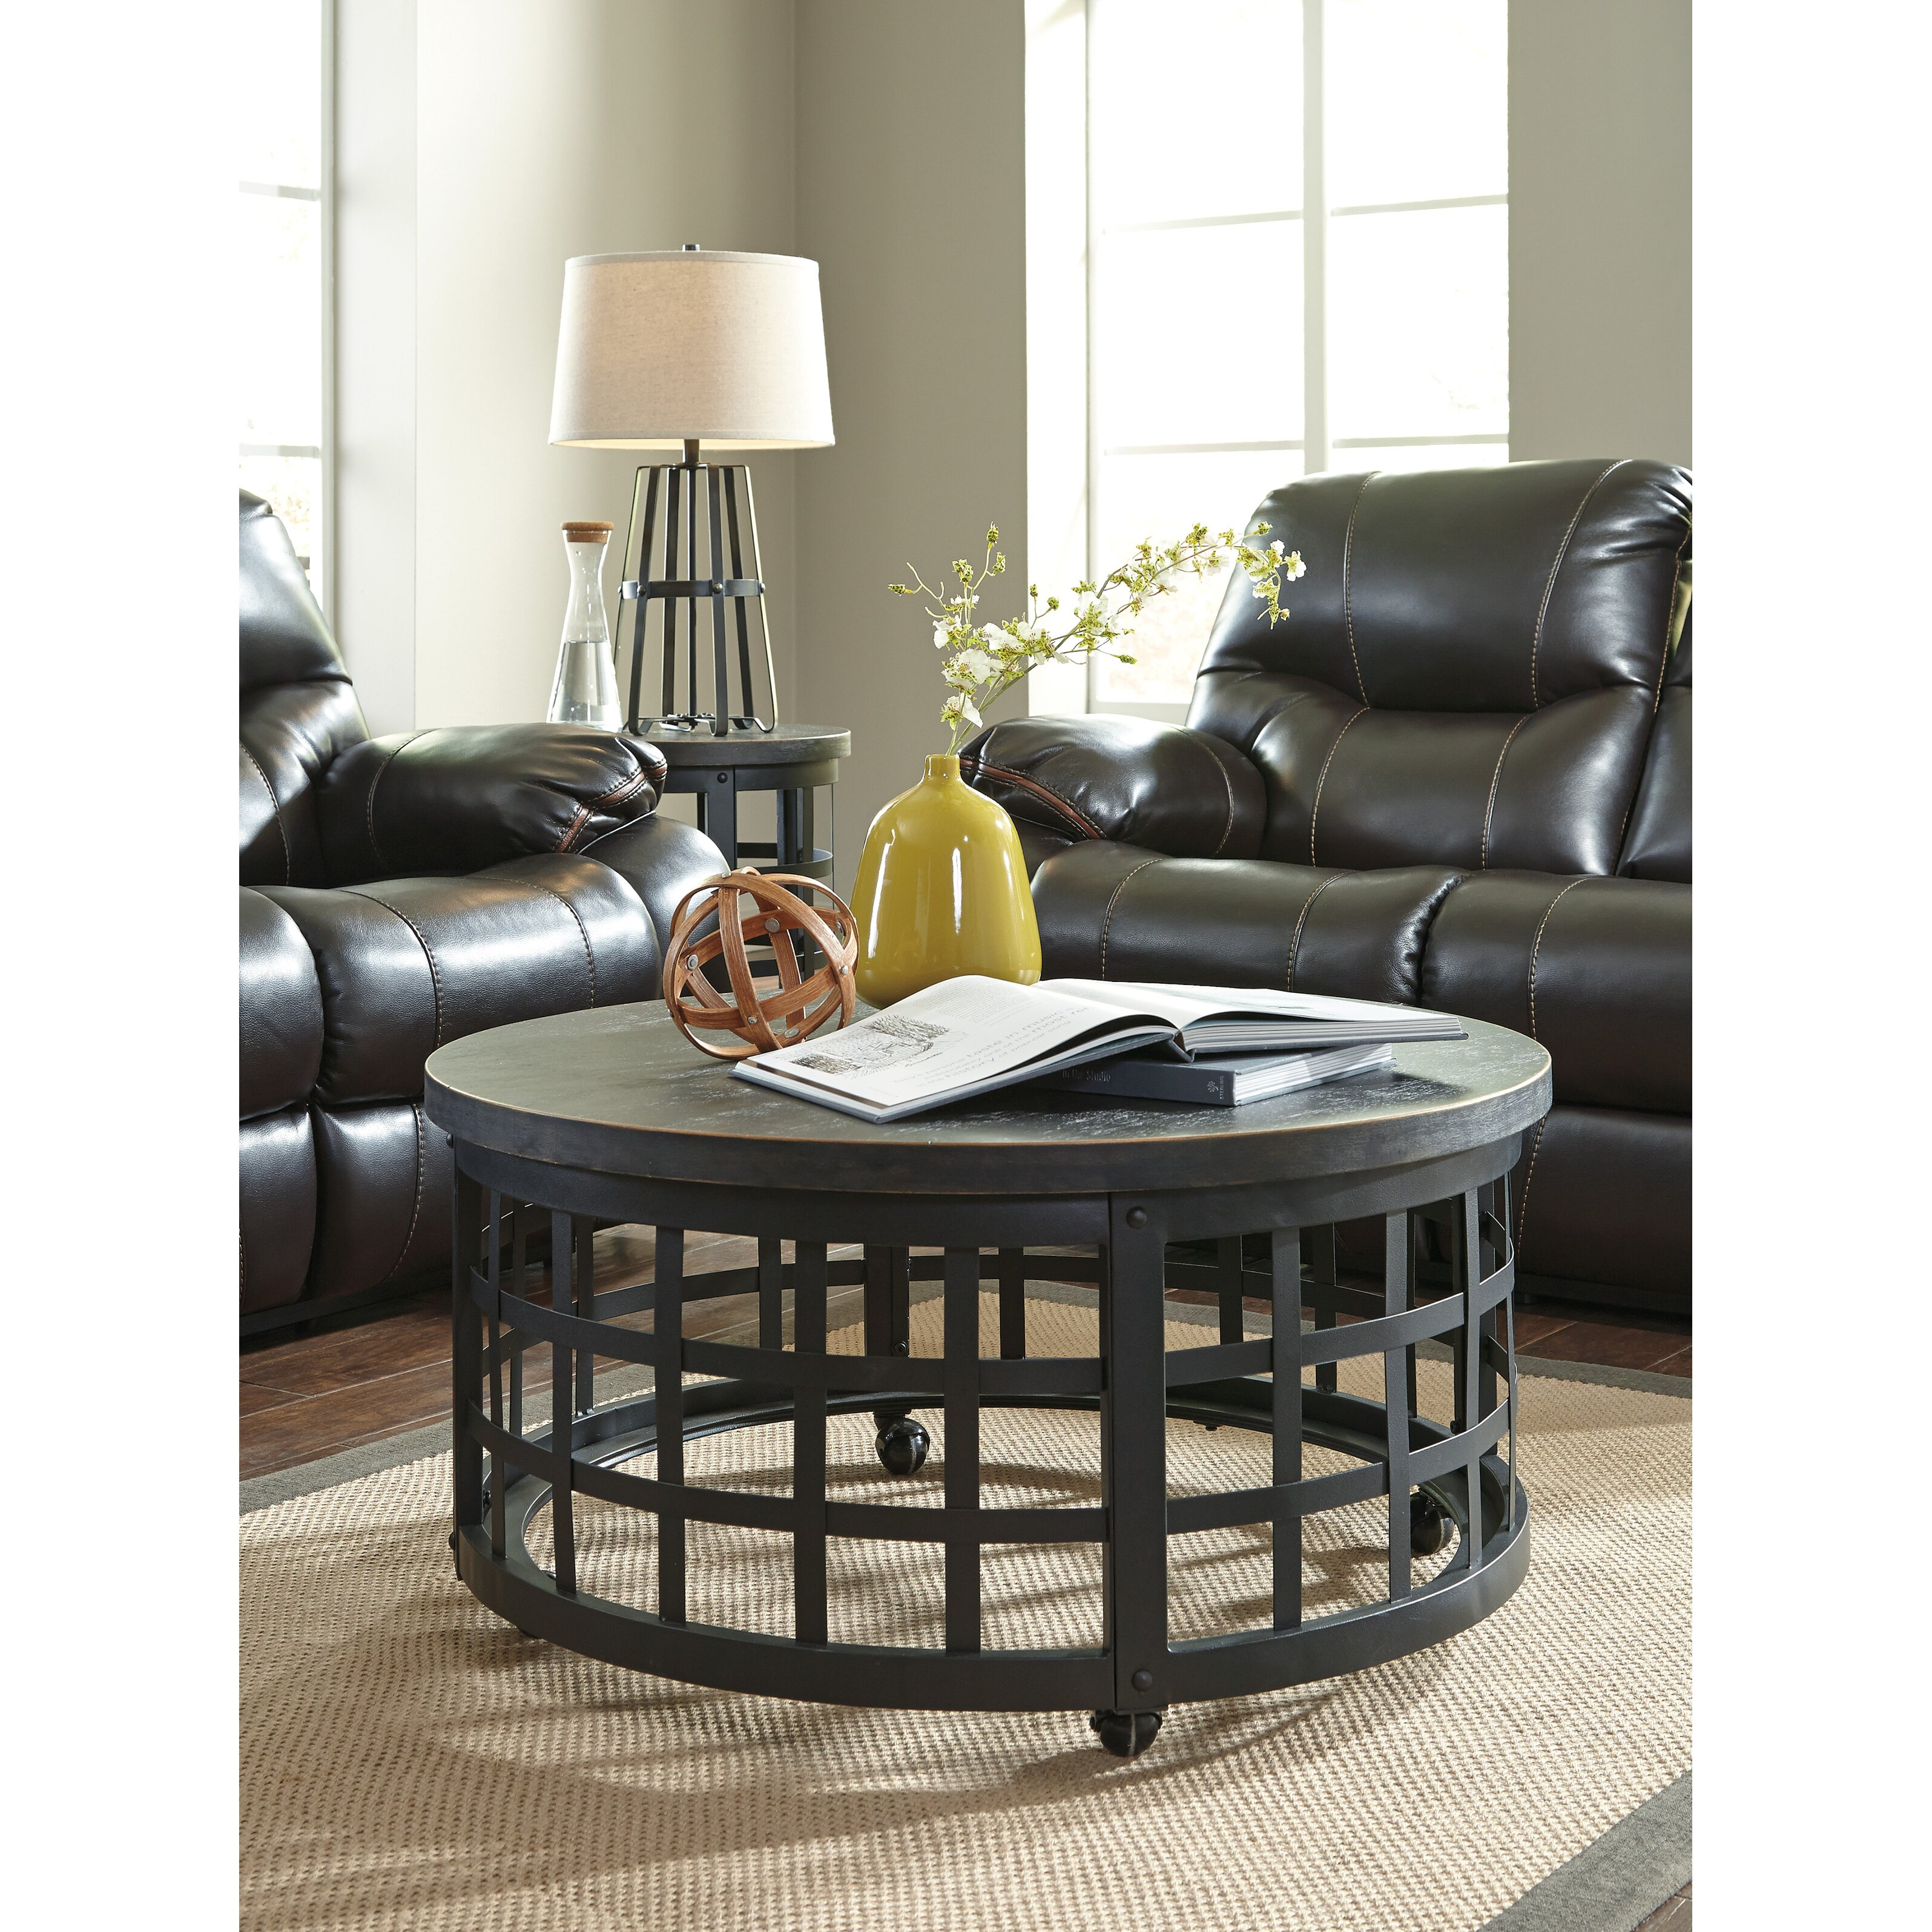 Ashley Furniture Table: Signature Design By Ashley Marimon Coffee Table & Reviews